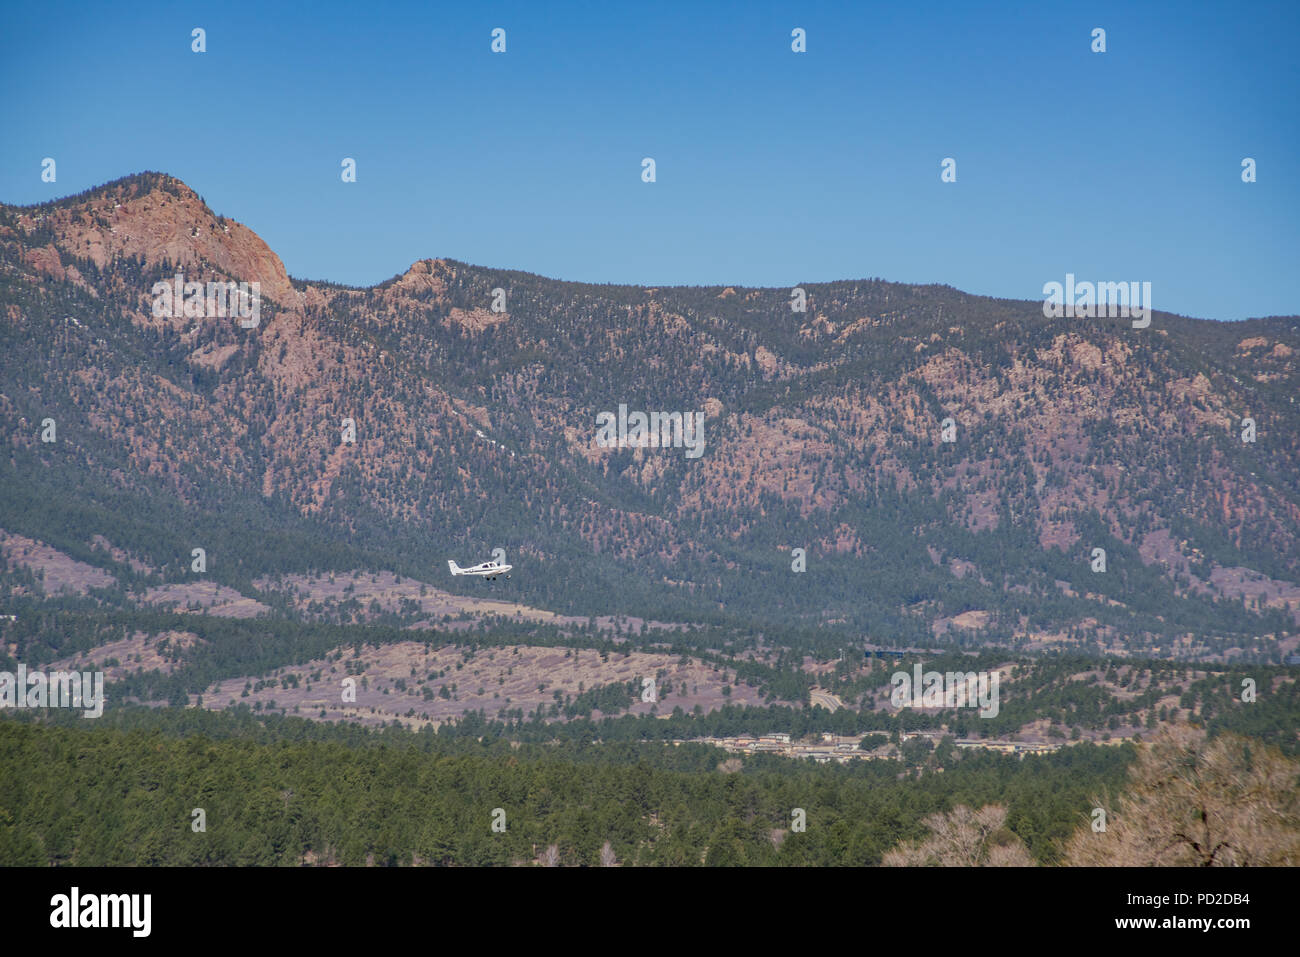 The beautiful landscape from the Ackerman Overlook, Colorado Springs, Colorado - Stock Image